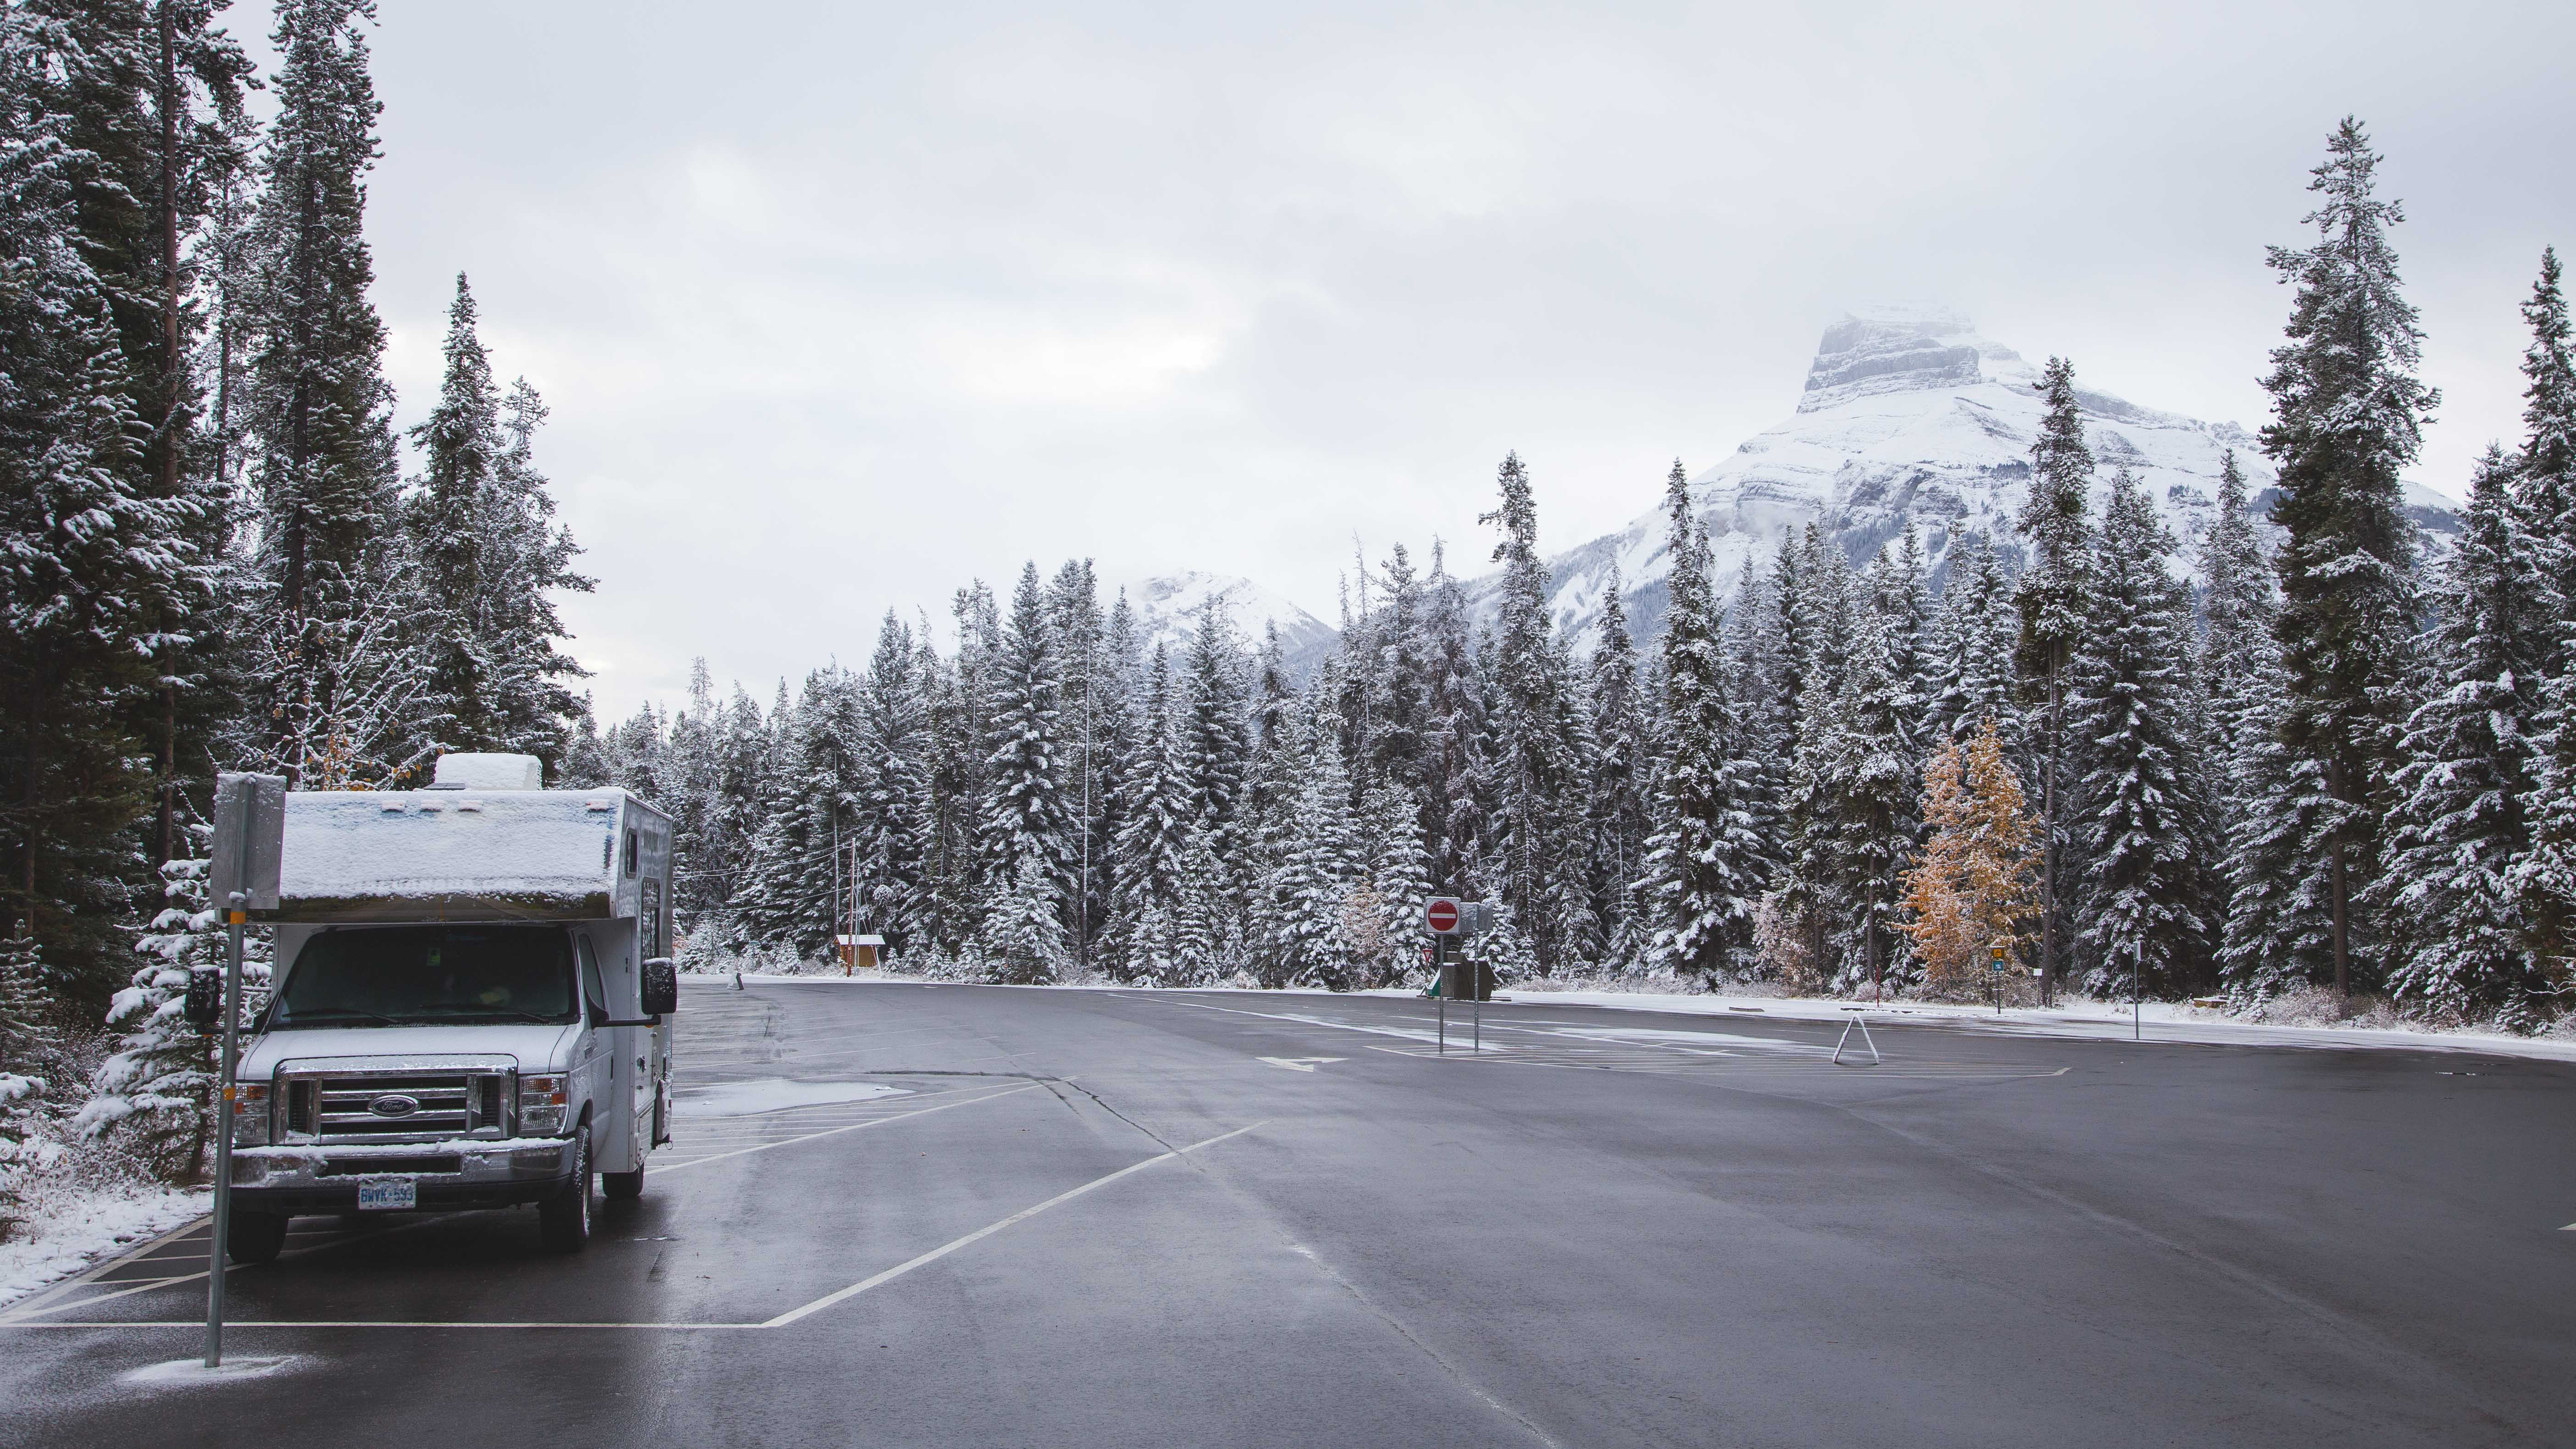 Travel on the Cheap: FAQ and Review of Renting an RV to tour the Canadian Rockies